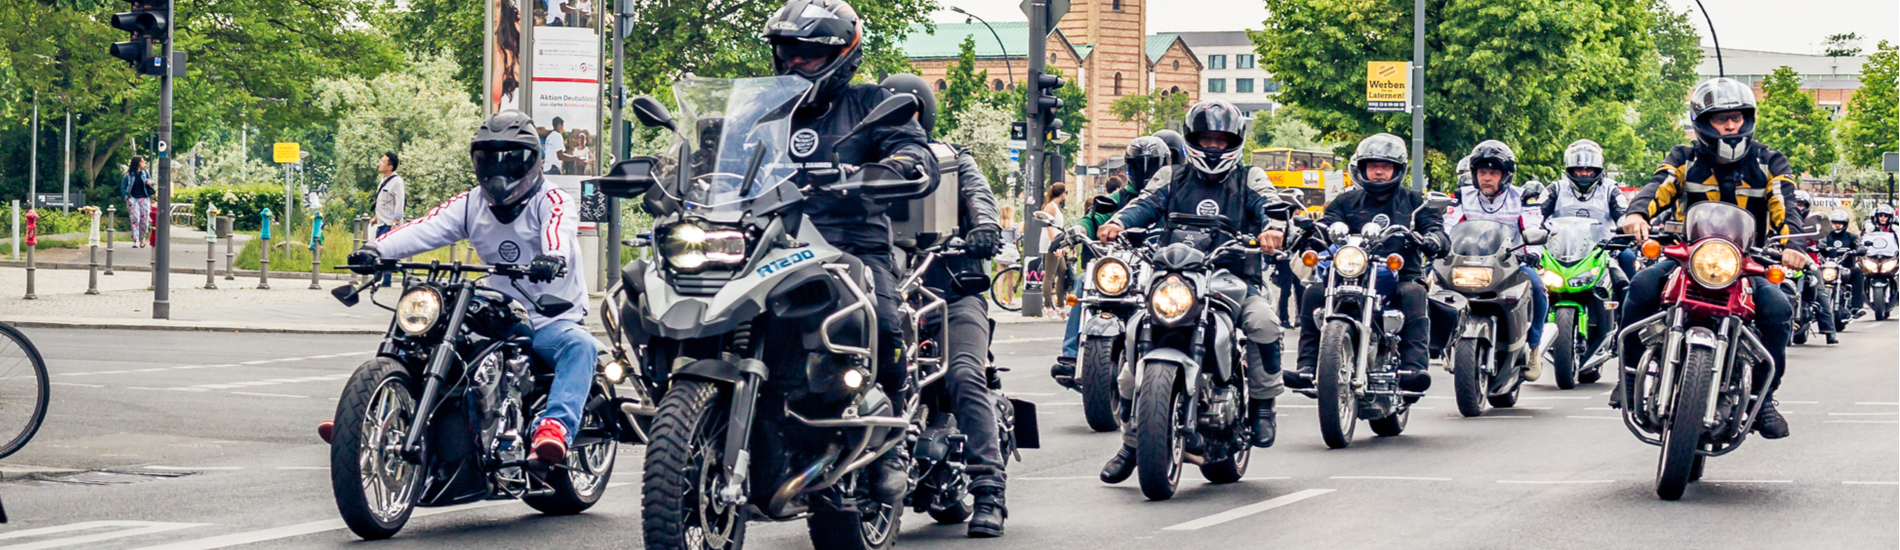 Raising money for charities, one ride at a time